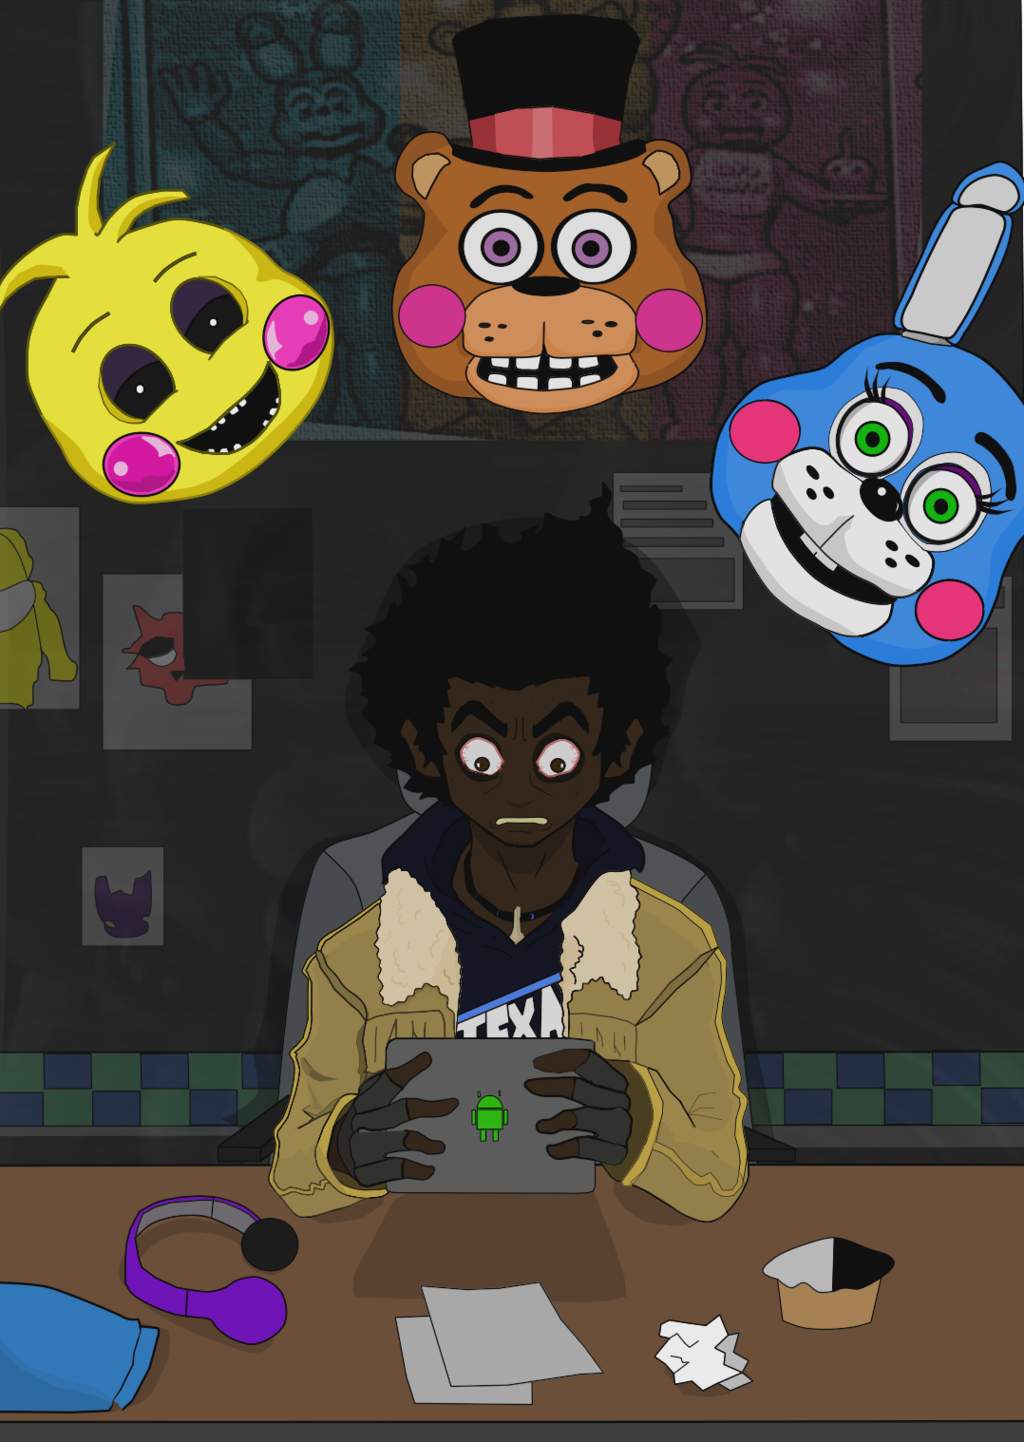 Cover clipart fnaf ChrisMcClary Not done Not by